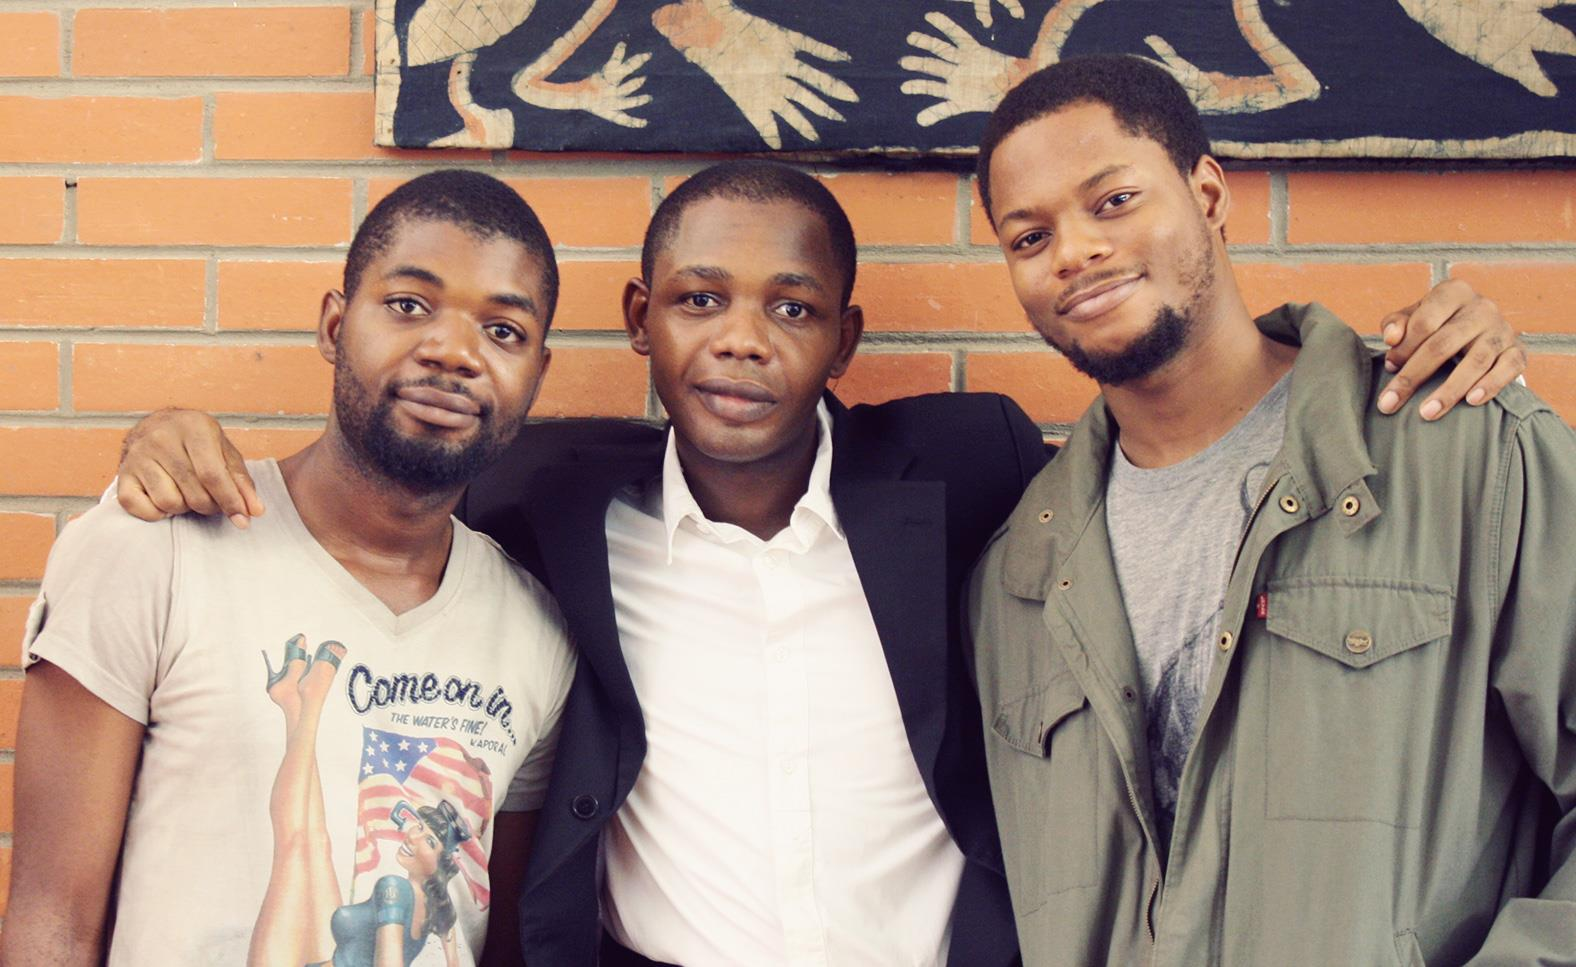 (Prowork team) L-R: Ope, Francis and Namzo